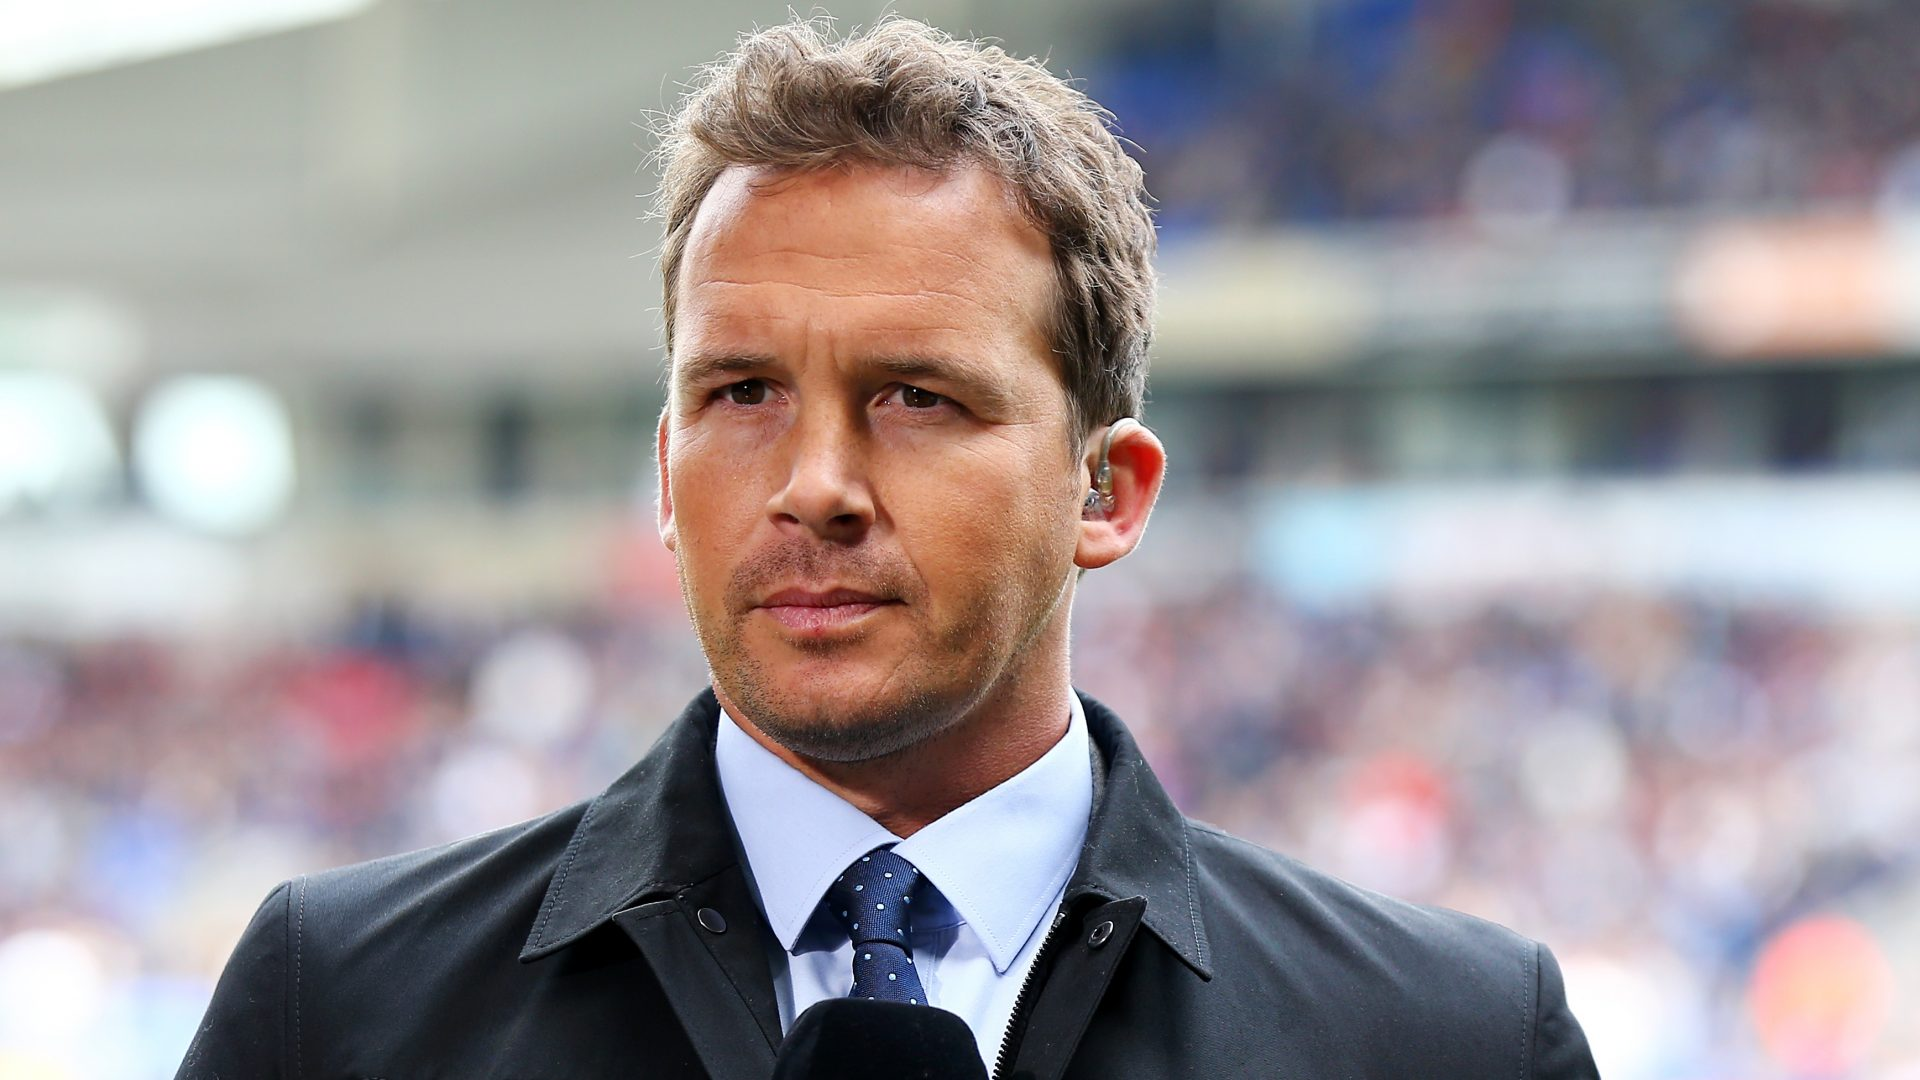 Kevin Davies played more than 400 games for Bolton and is regarded as a club legend